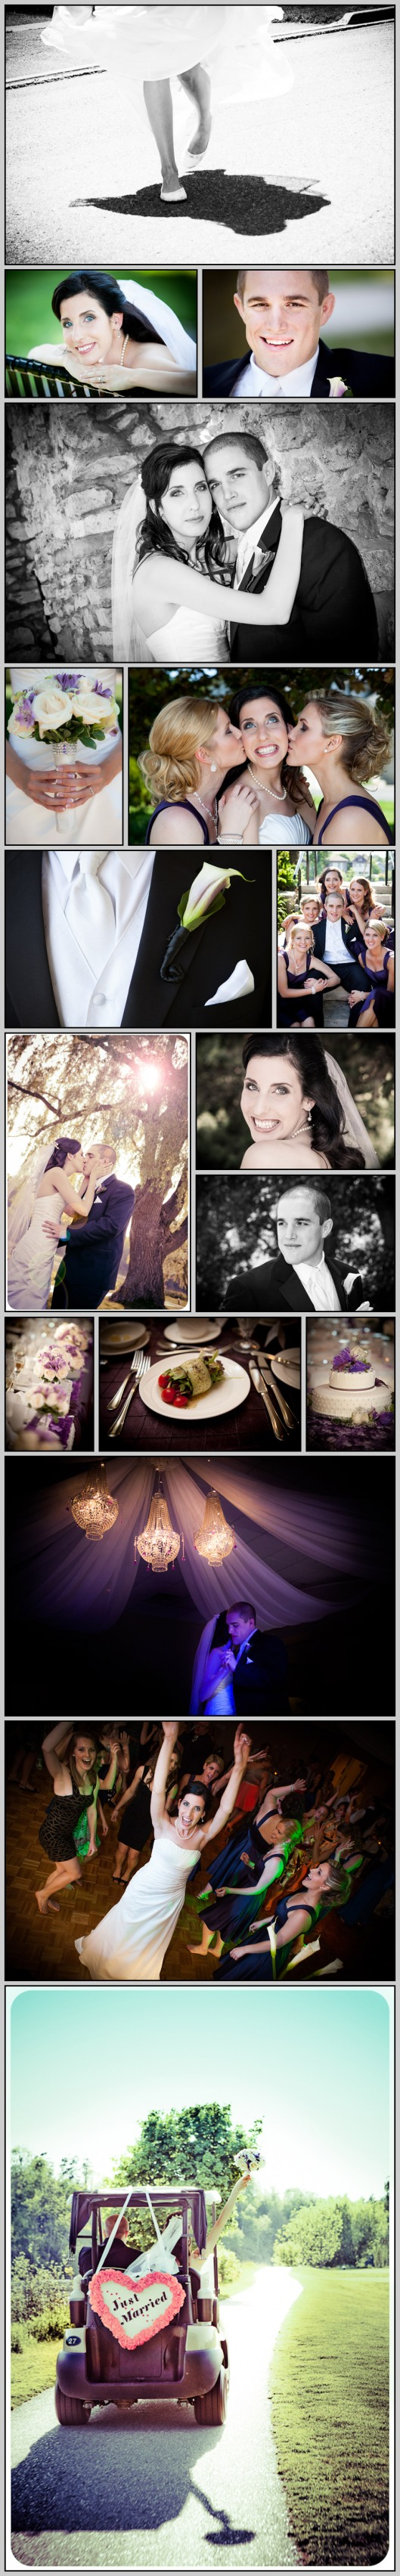 Cambridge Ontario wedding photos on a golf course